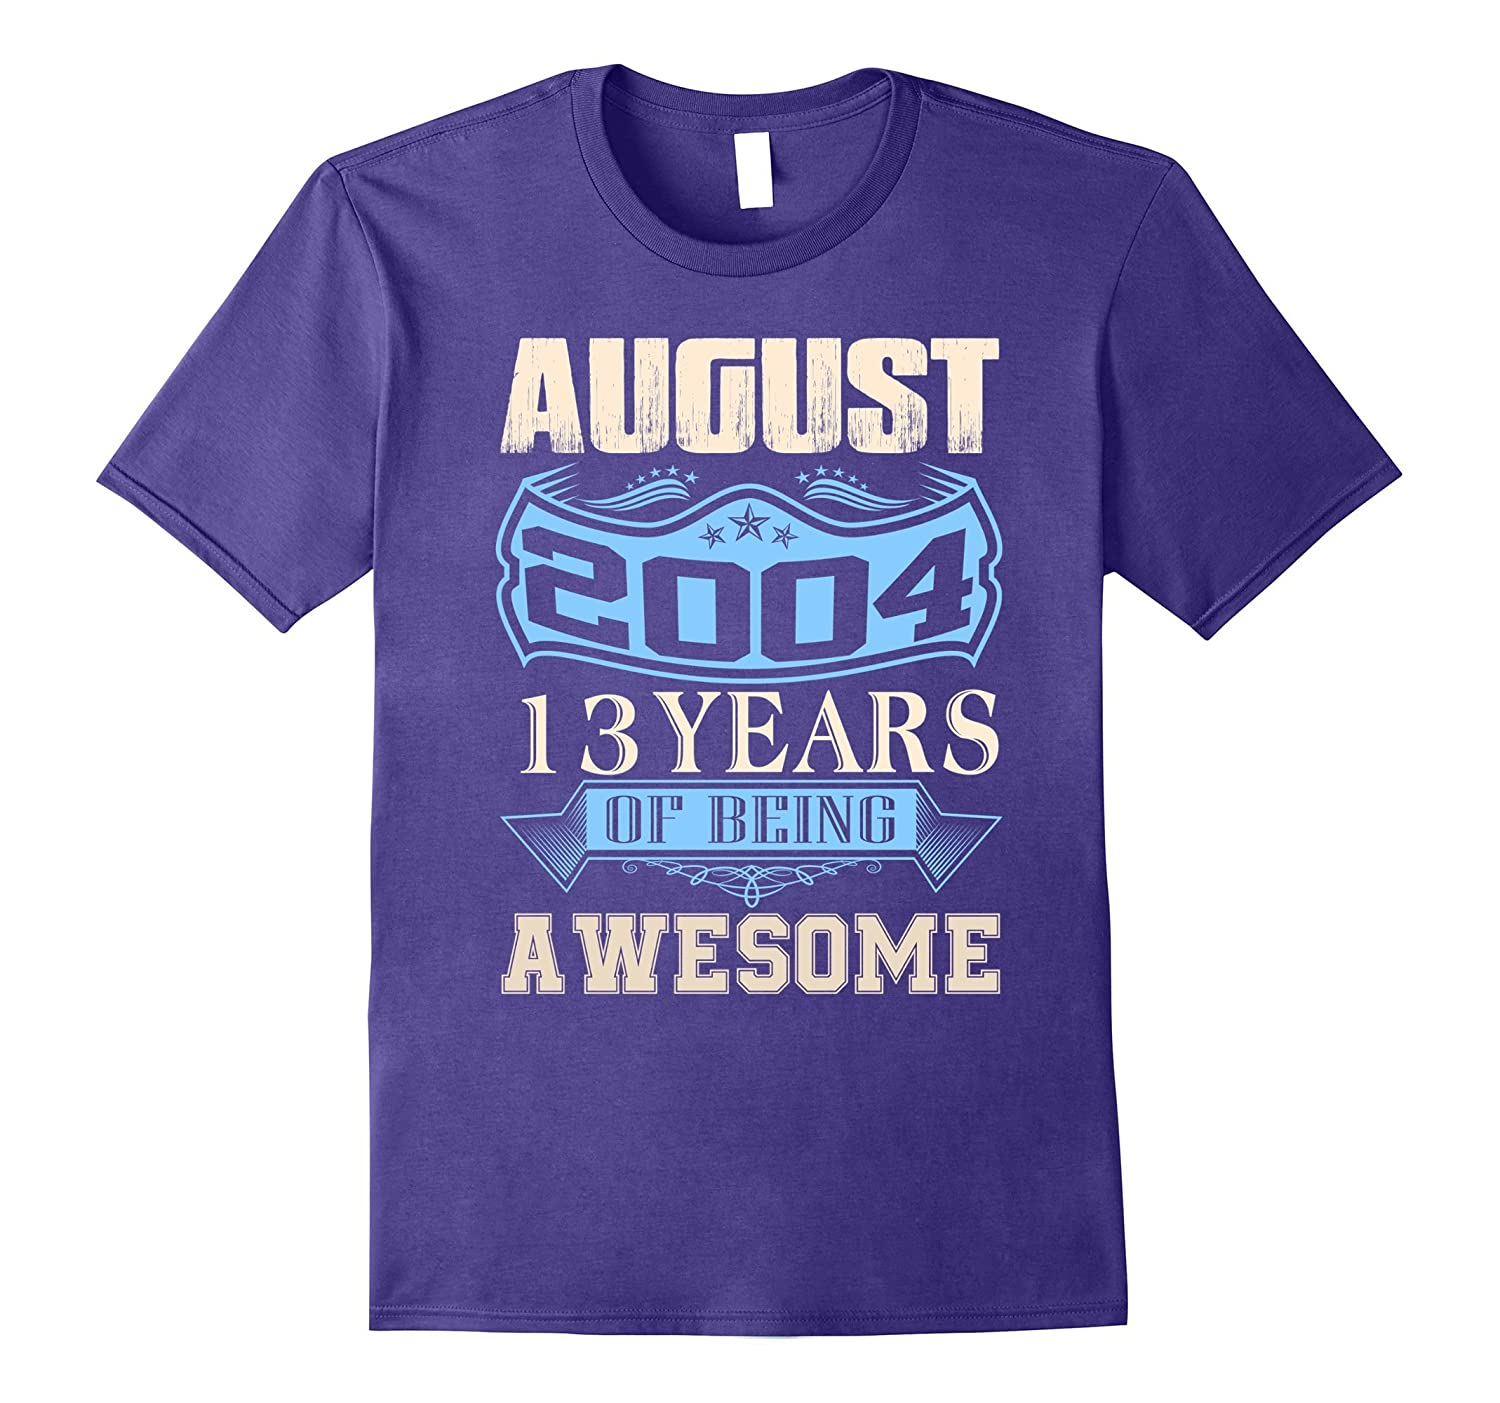 13 years of being awesome - Born in August 2004 Tshirt-TH